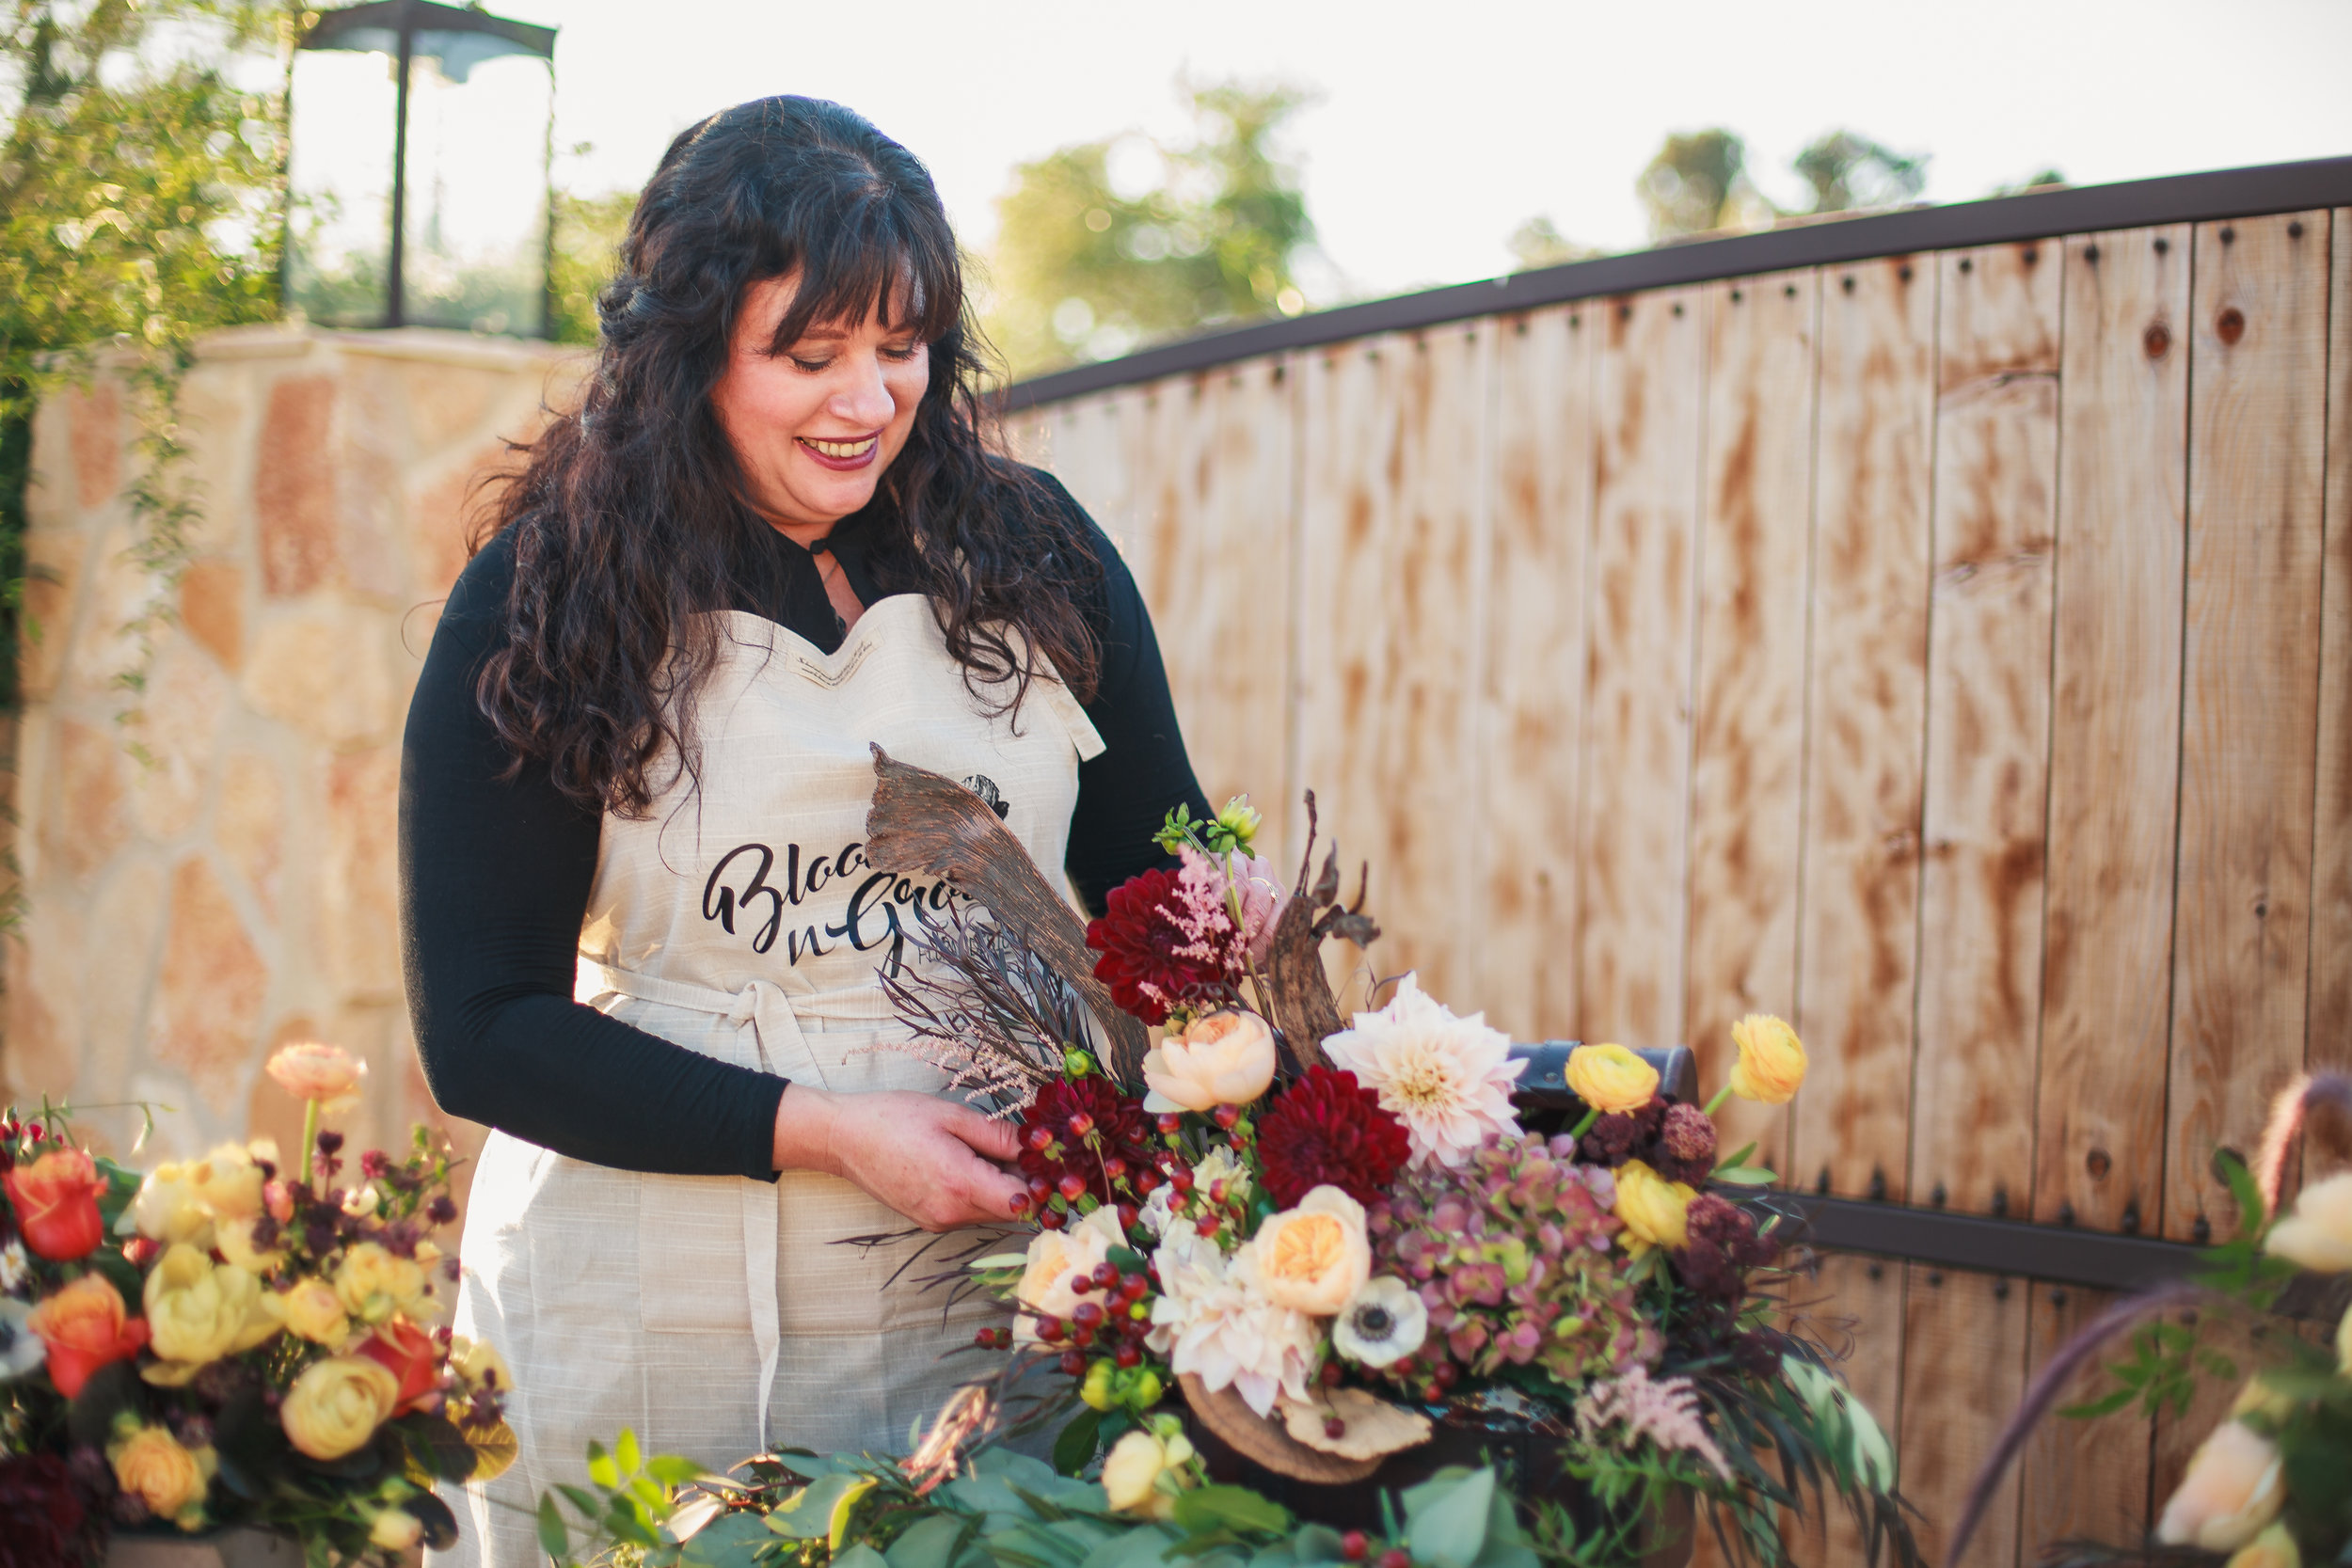 A Little About Jodi - Jodi has a degree in Horticulture and is a certified master designer. She has won numerous awards for her floral designs.